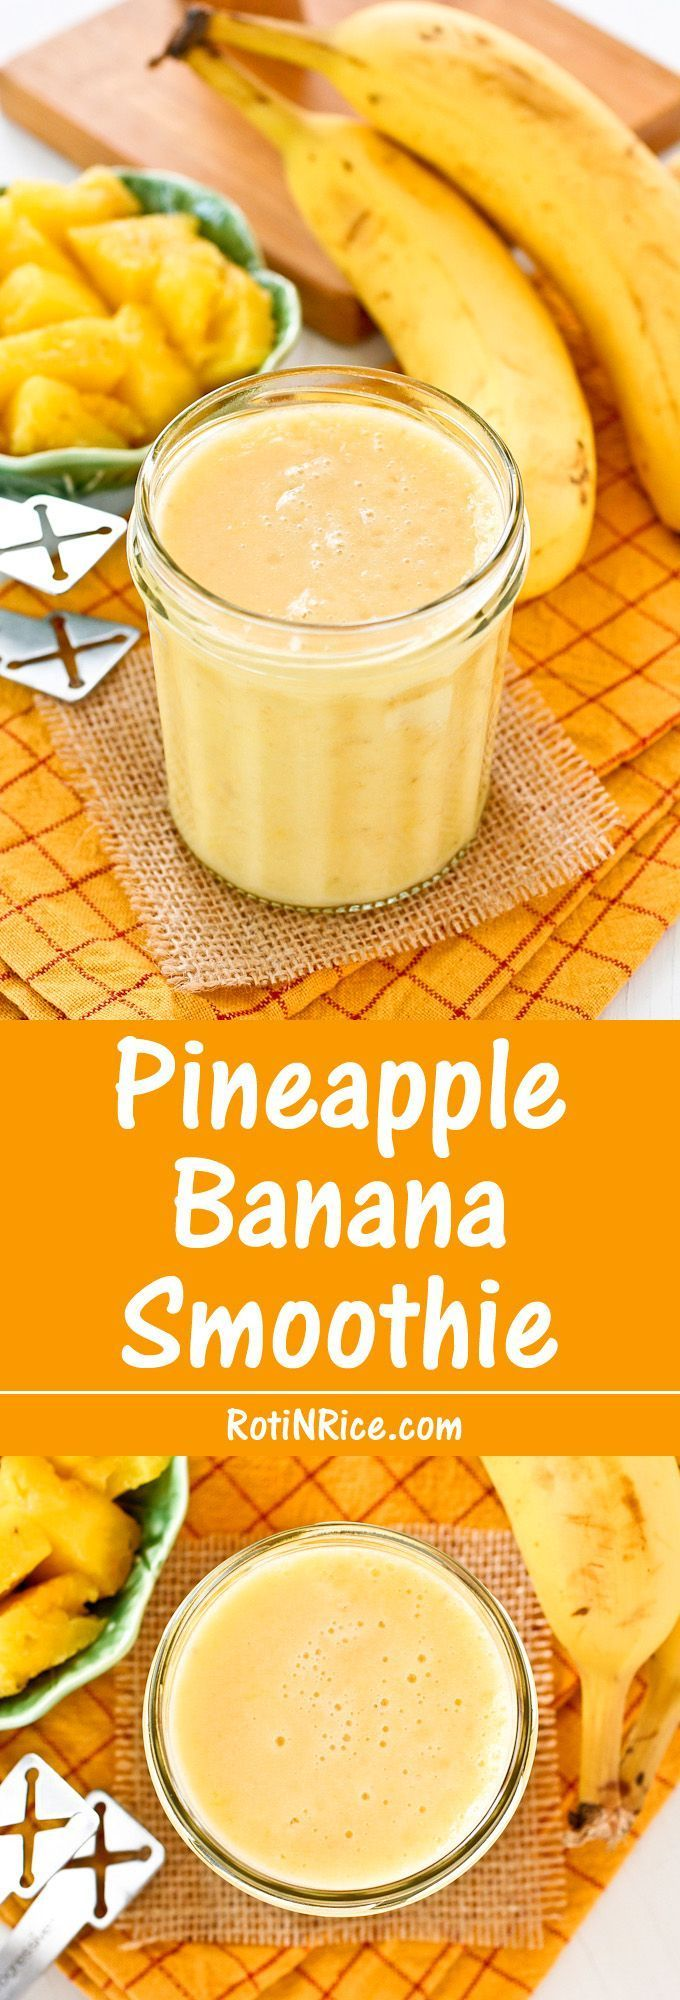 + Tropical Smoothie Recipes on Pinterest | Smoothie Recipes, Smoothie ...